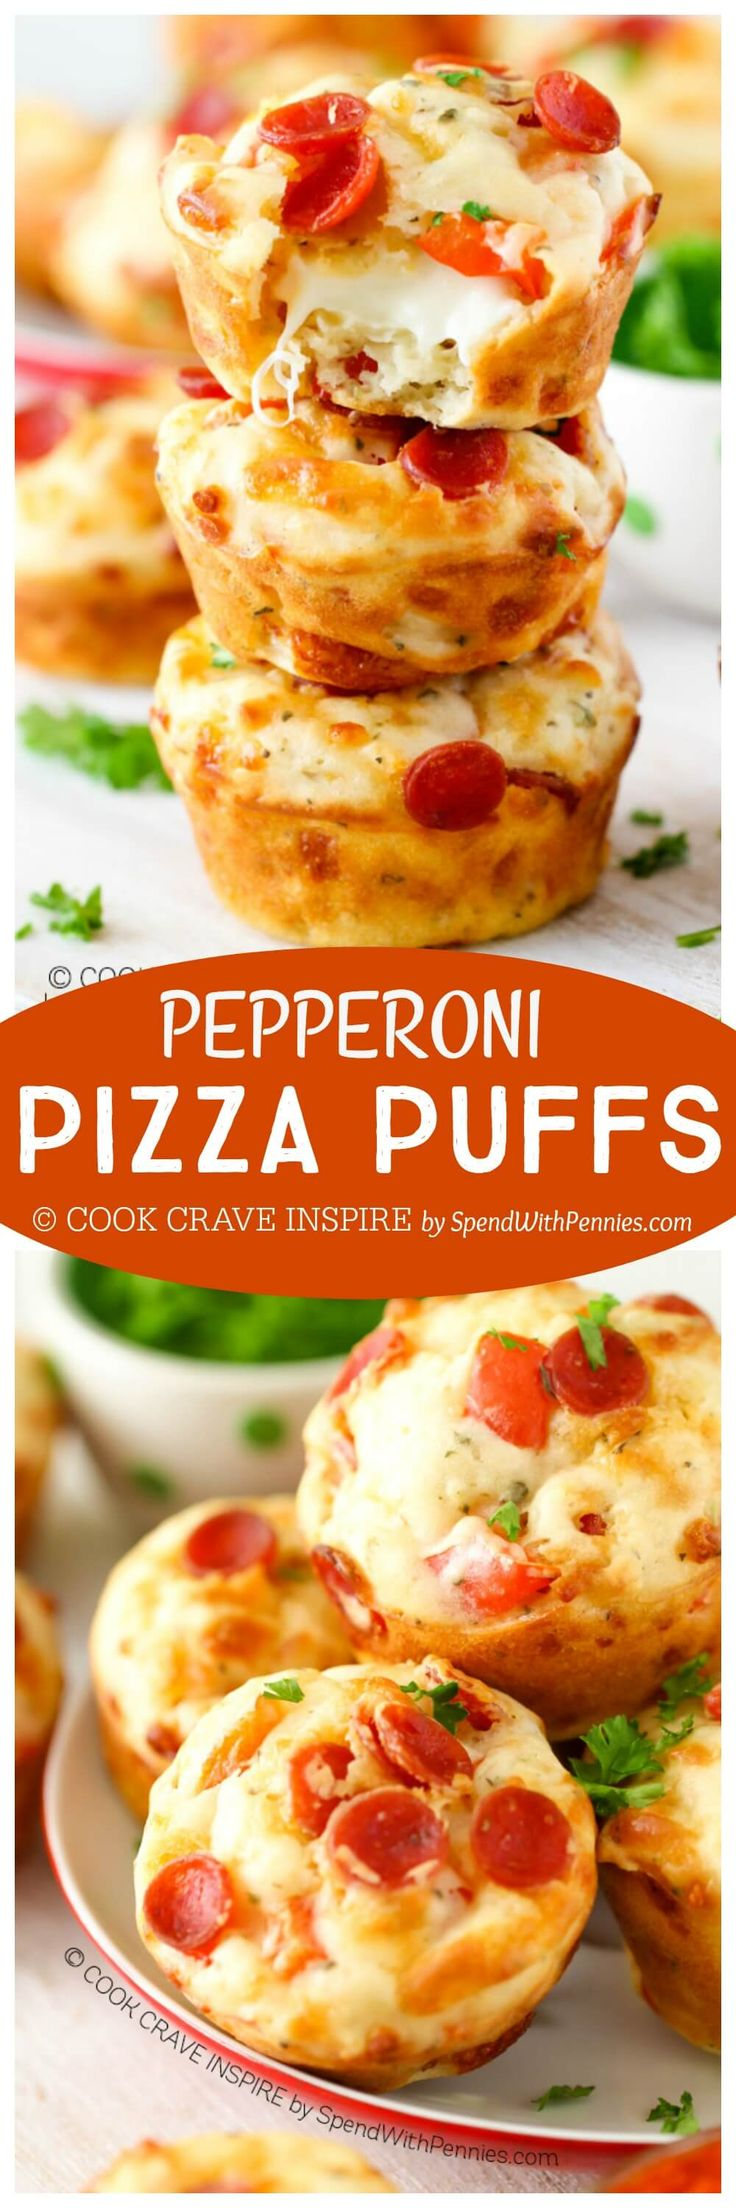 Easy Cheesy Pepperoni Pizza Puffs! The perfect snack or lunch box addition! Add your favorite toppings to make these your own! Easy lunch box idea! #ad